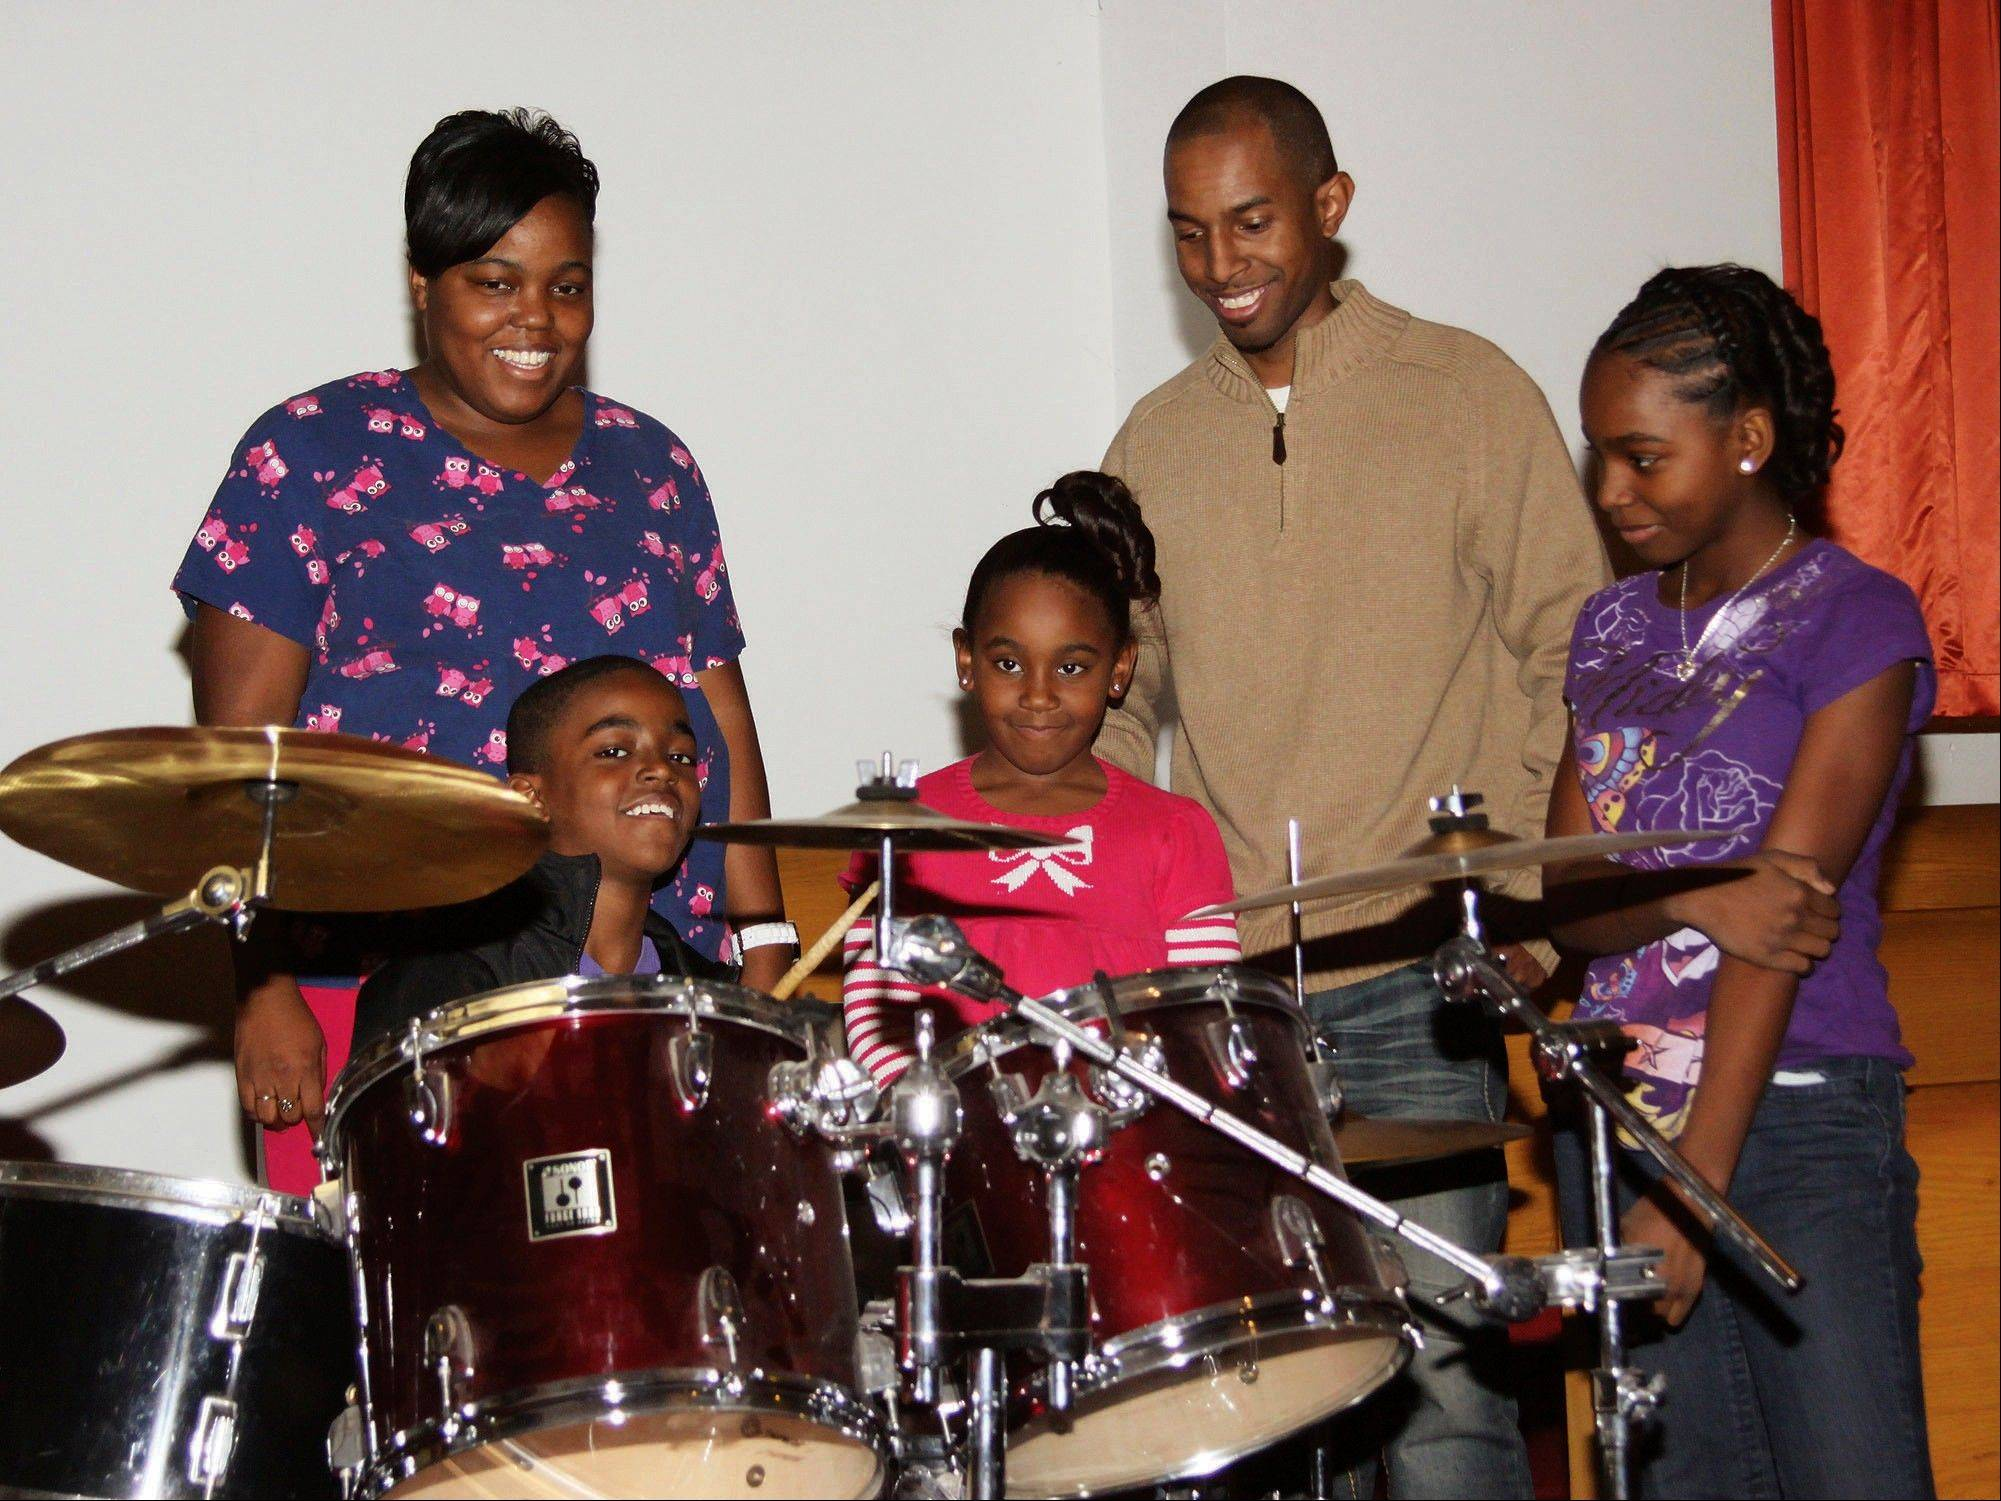 Maria and LaJason Parker, listen to their son Jayrin, 10, play the drums, as his sisters Jyah, 6, center, and Jalae, 12, also look on at the Greater Shiloh Baptist Church in Danville, Ill.